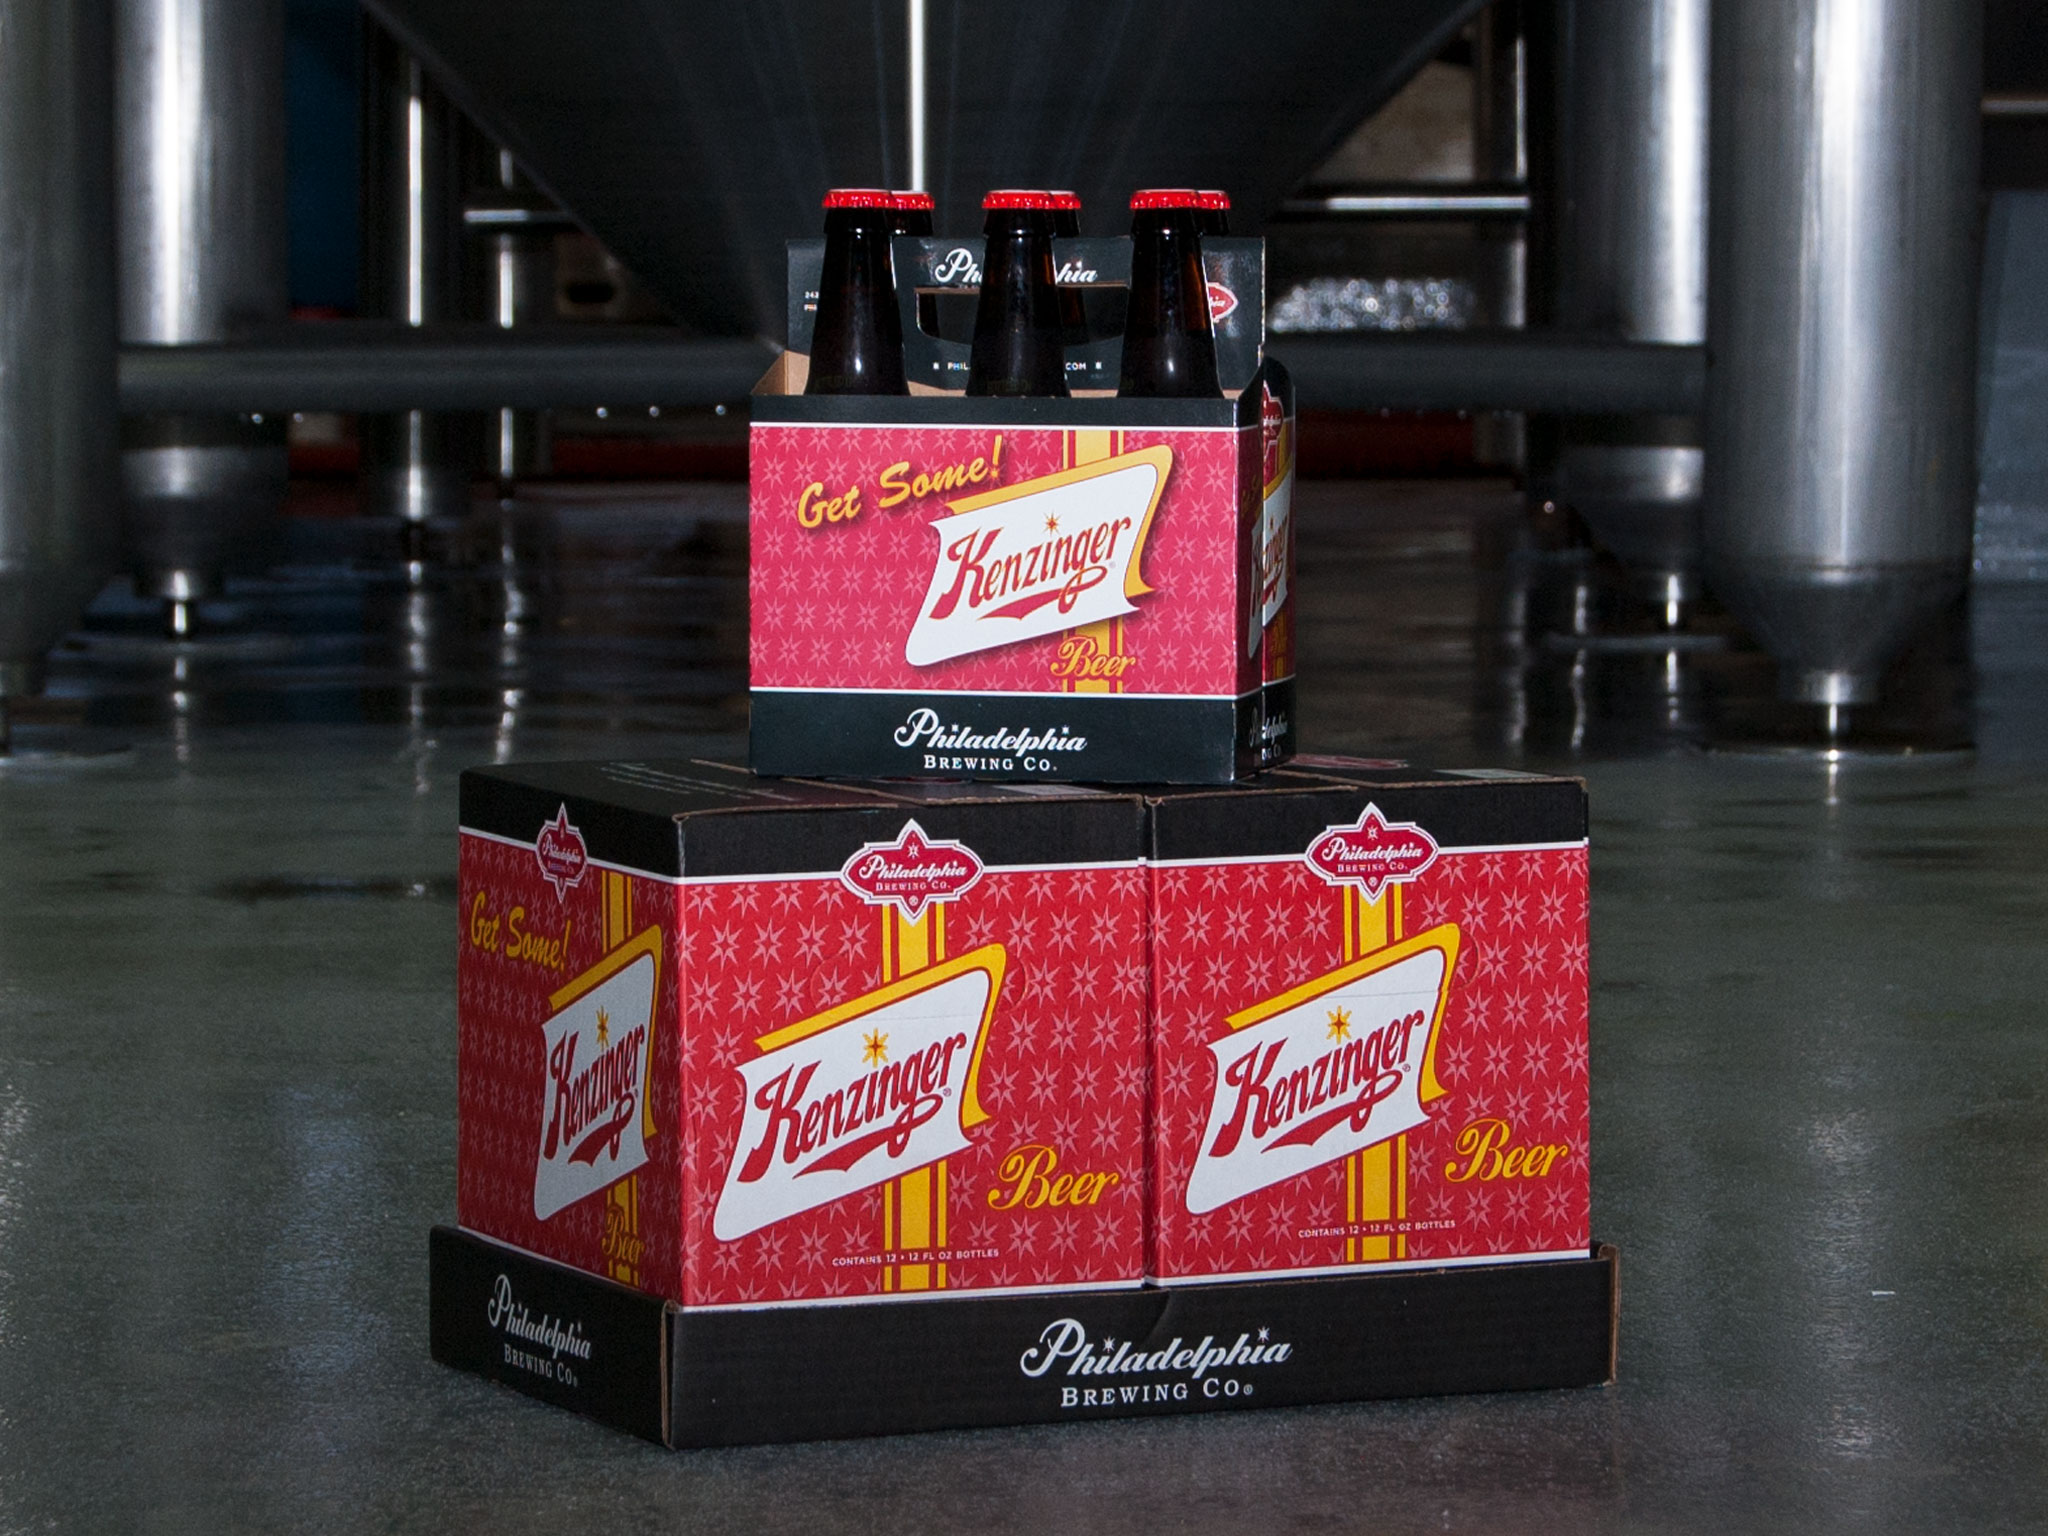 Note: The Kenzinger brand is a preexisting design. This image is meant to show the brand consistent 12 and 6 pack packaging.